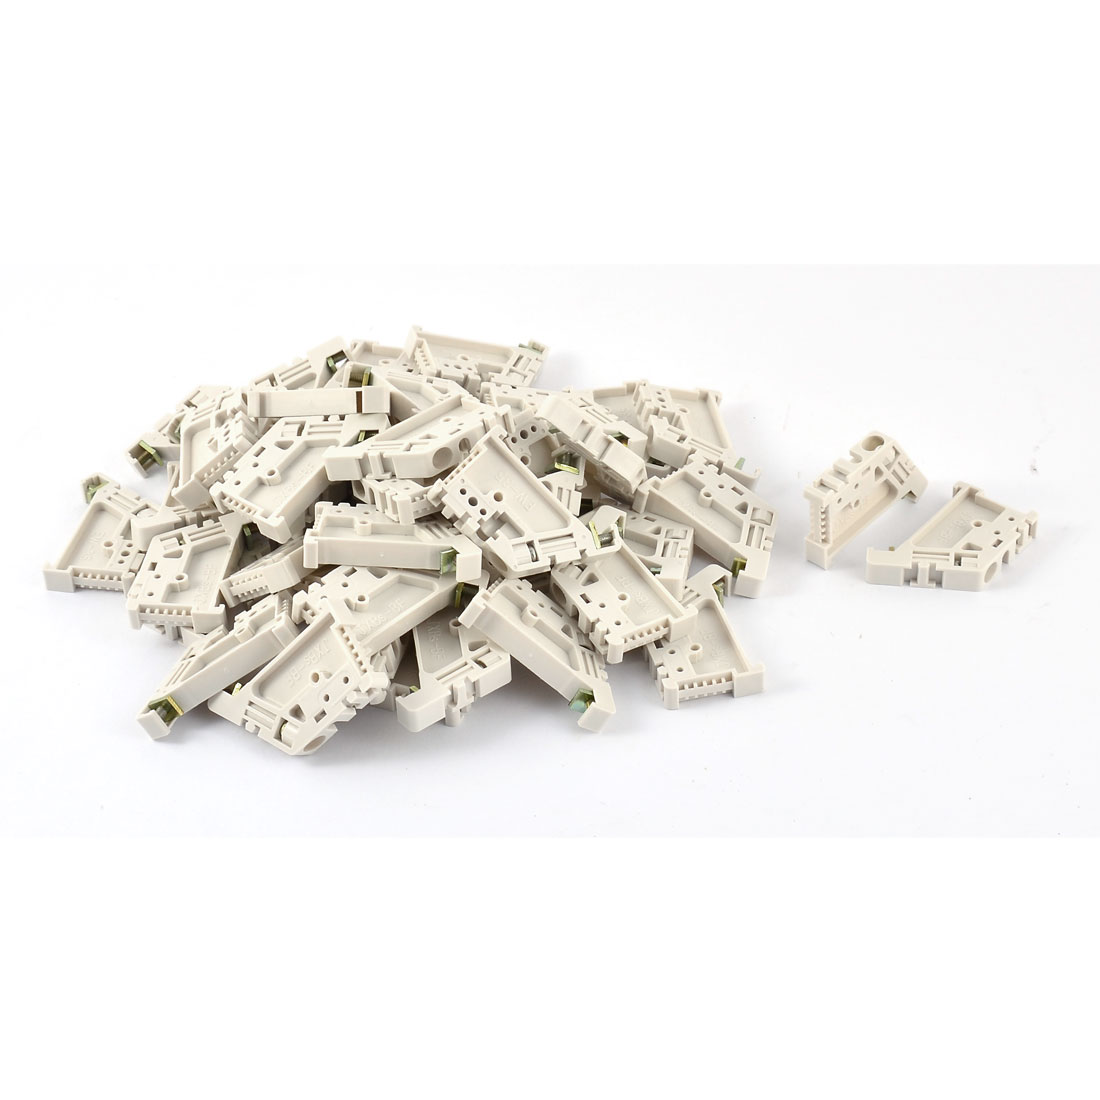 50 Pcs White Plastic 35mm DIN Rail Screw Fixed Terminal Block End Stopper Mounting Clips Clamps Connector